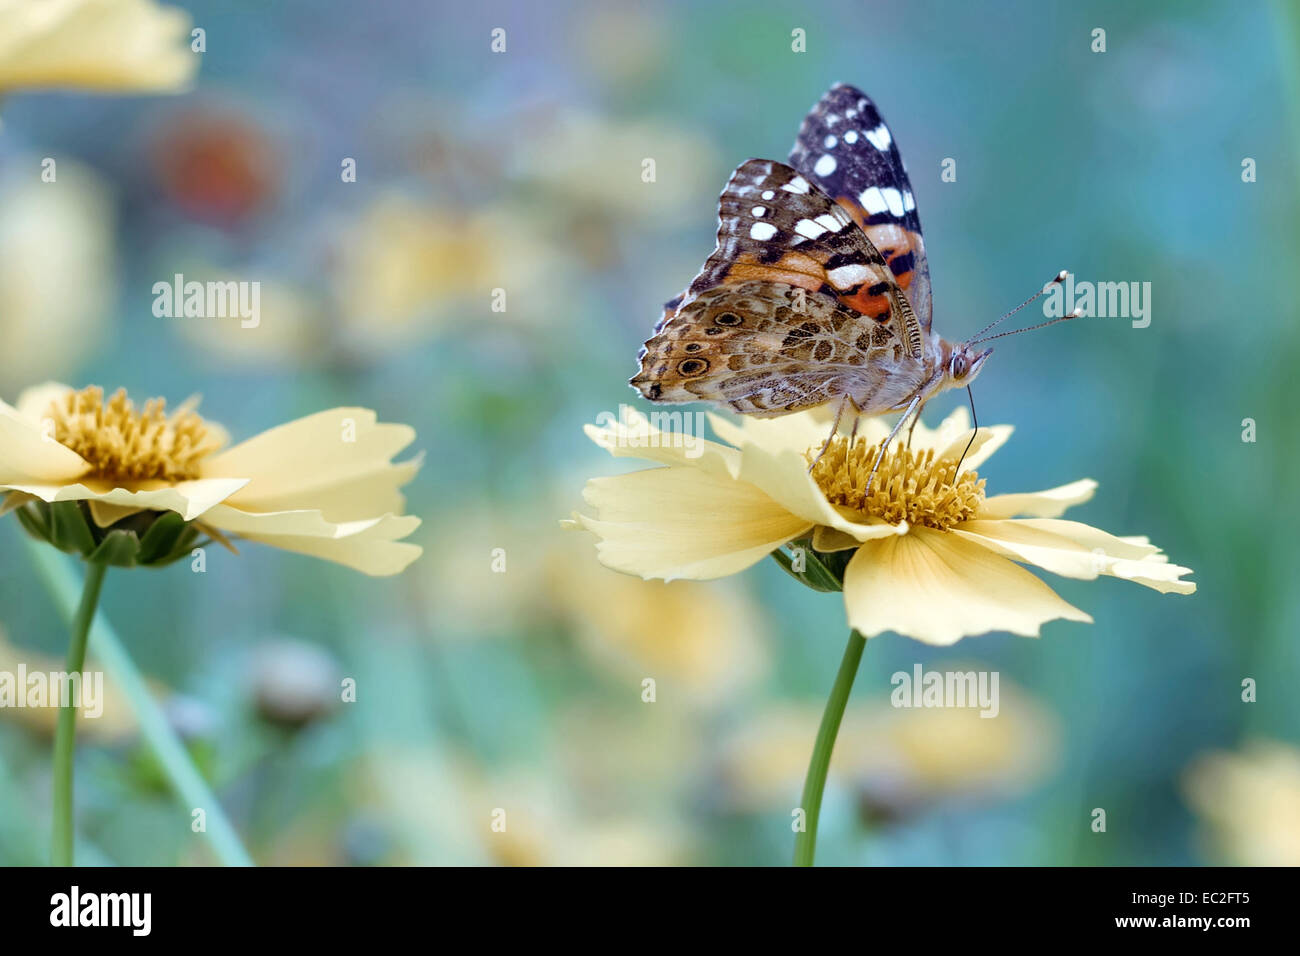 Butterfly on yellow flower in nature - Stock Image